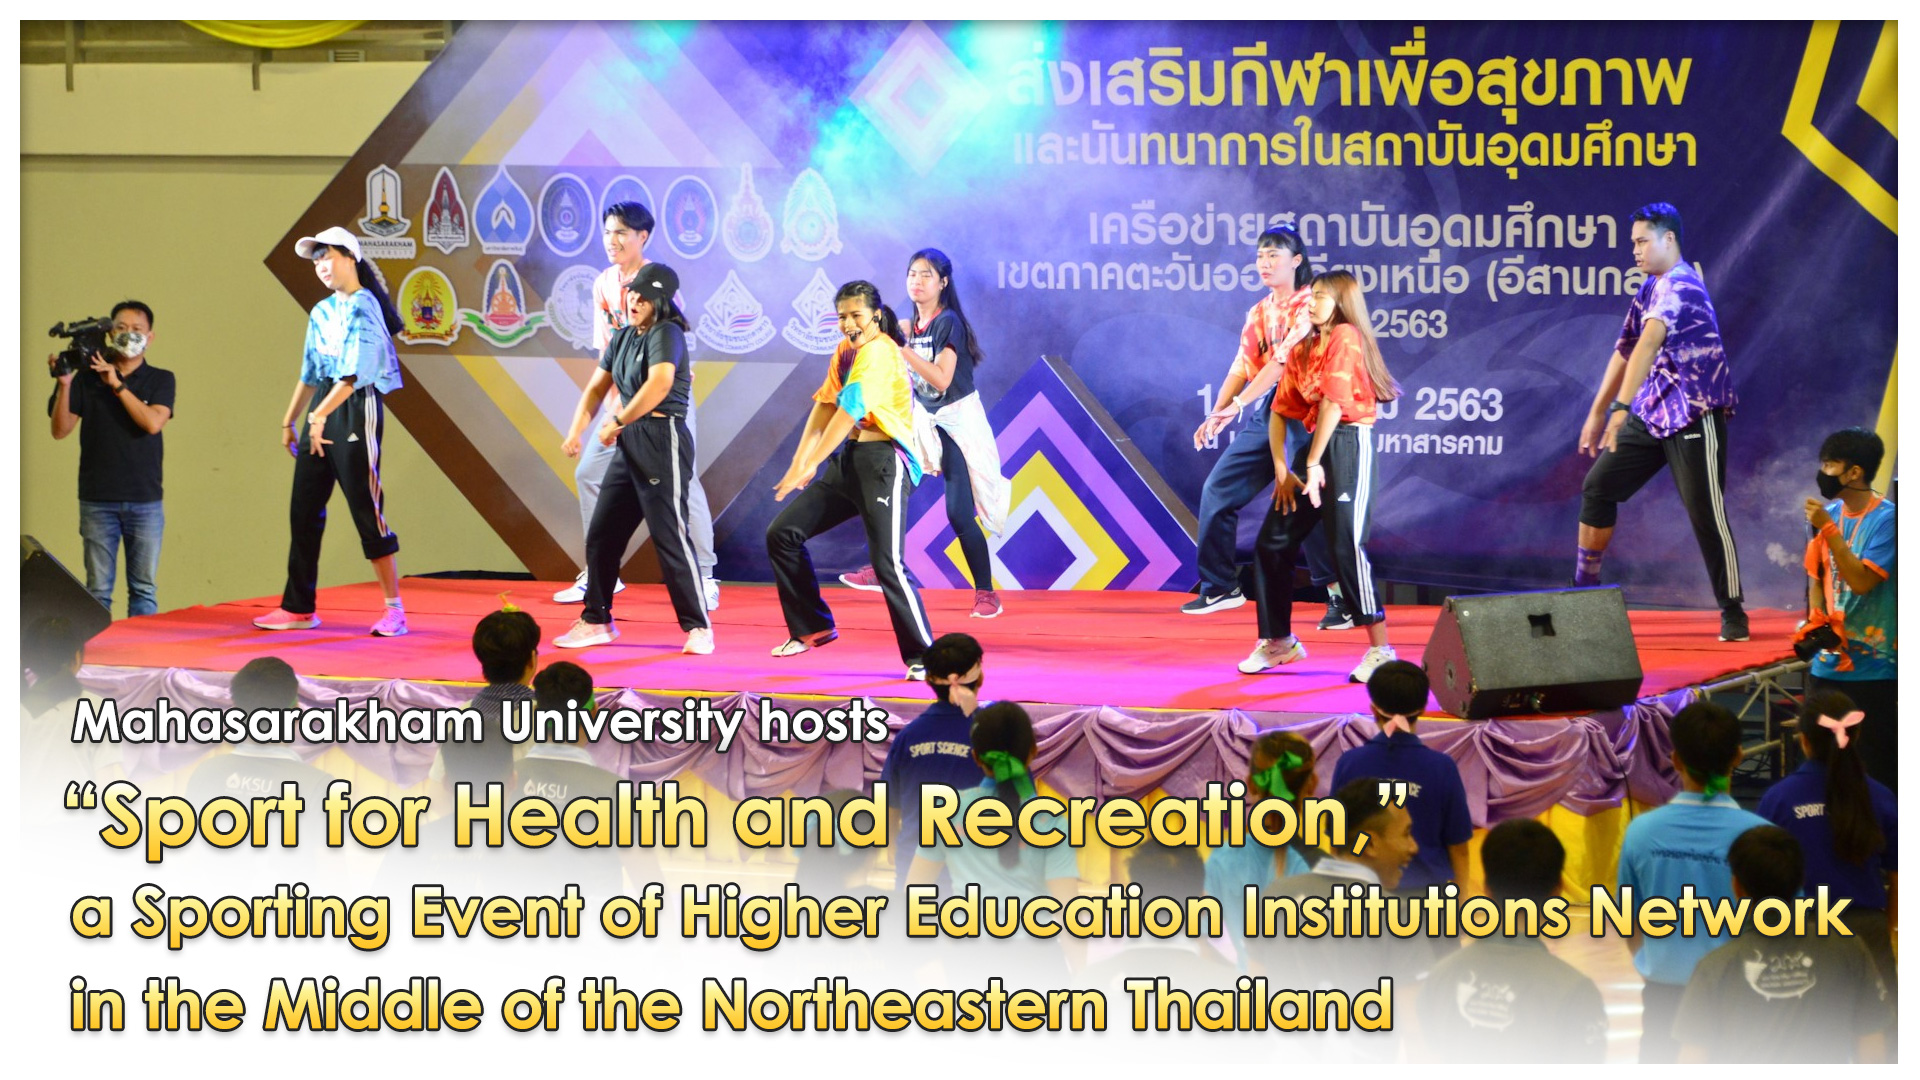 "Mahasarakham University hosts ""Sport for Health and Recreation,"" a Sporting Event of Higher Education Institutions Network in the Middle of the Northeastern Thailand."